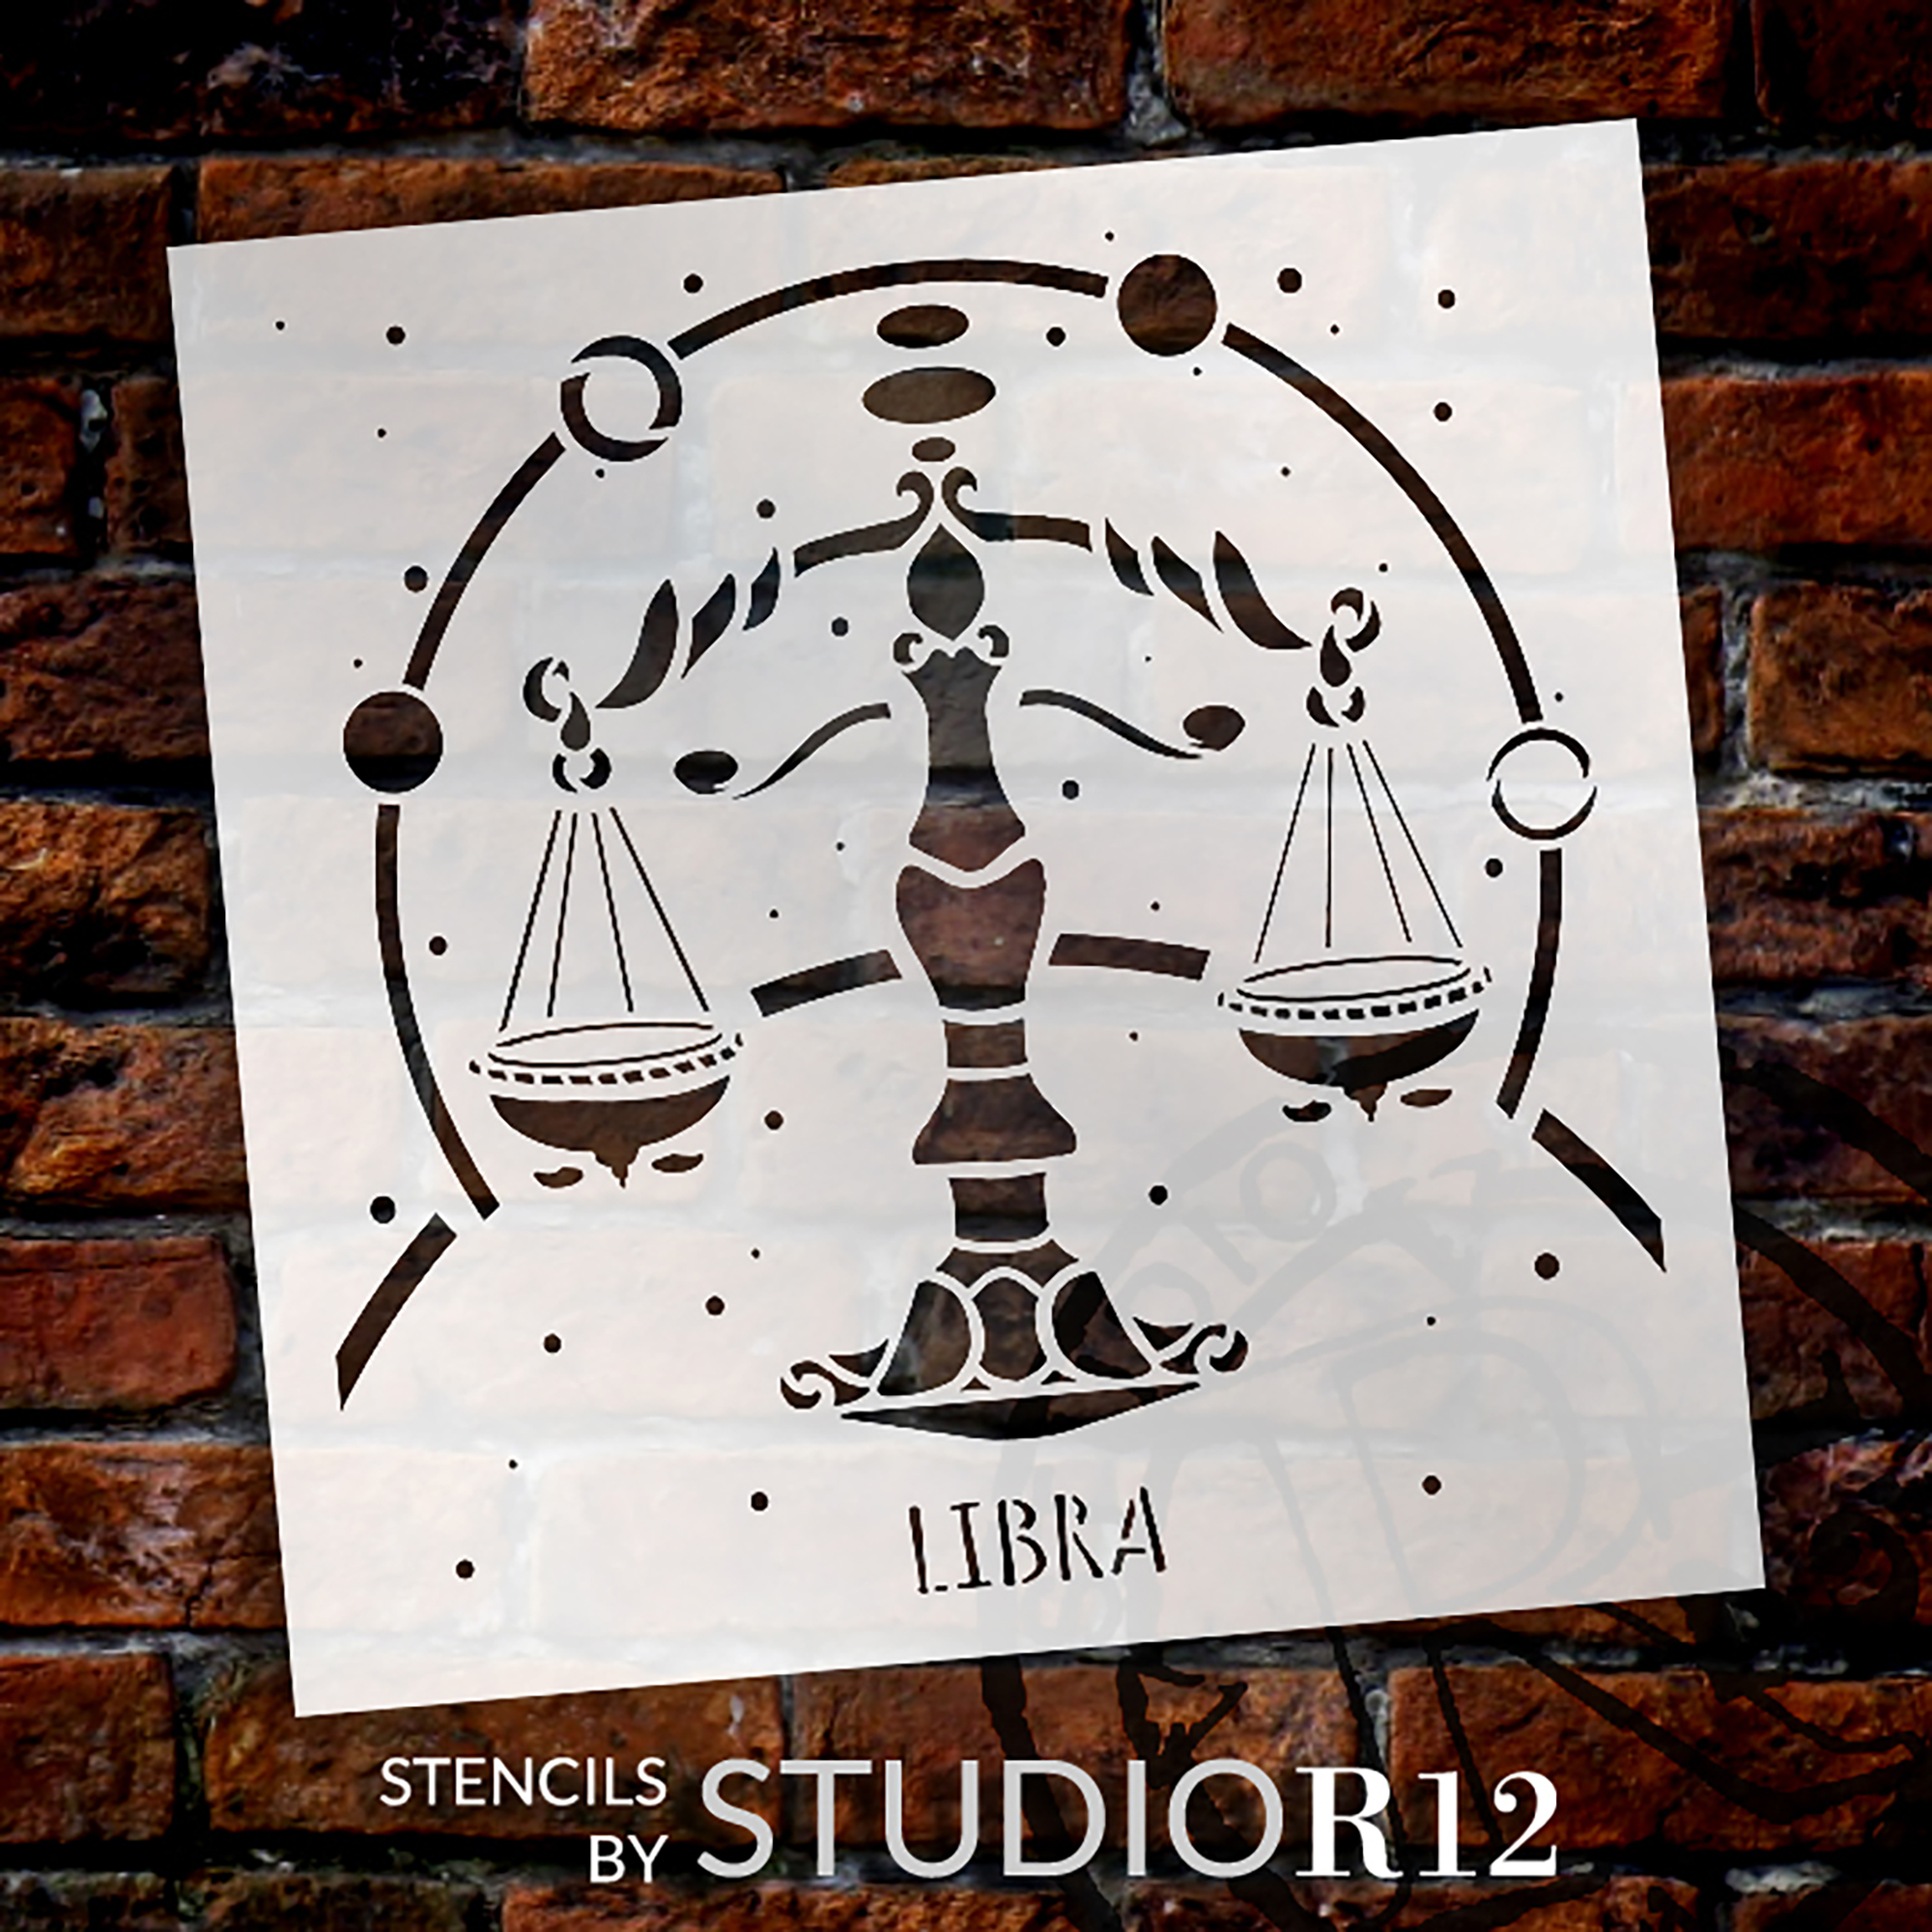 Libra Astrological Stencil by StudioR12 | DIY Star Sign Celestial Bedroom & Home Decor | Craft & Paint Zodiac Wood Signs | Select Size